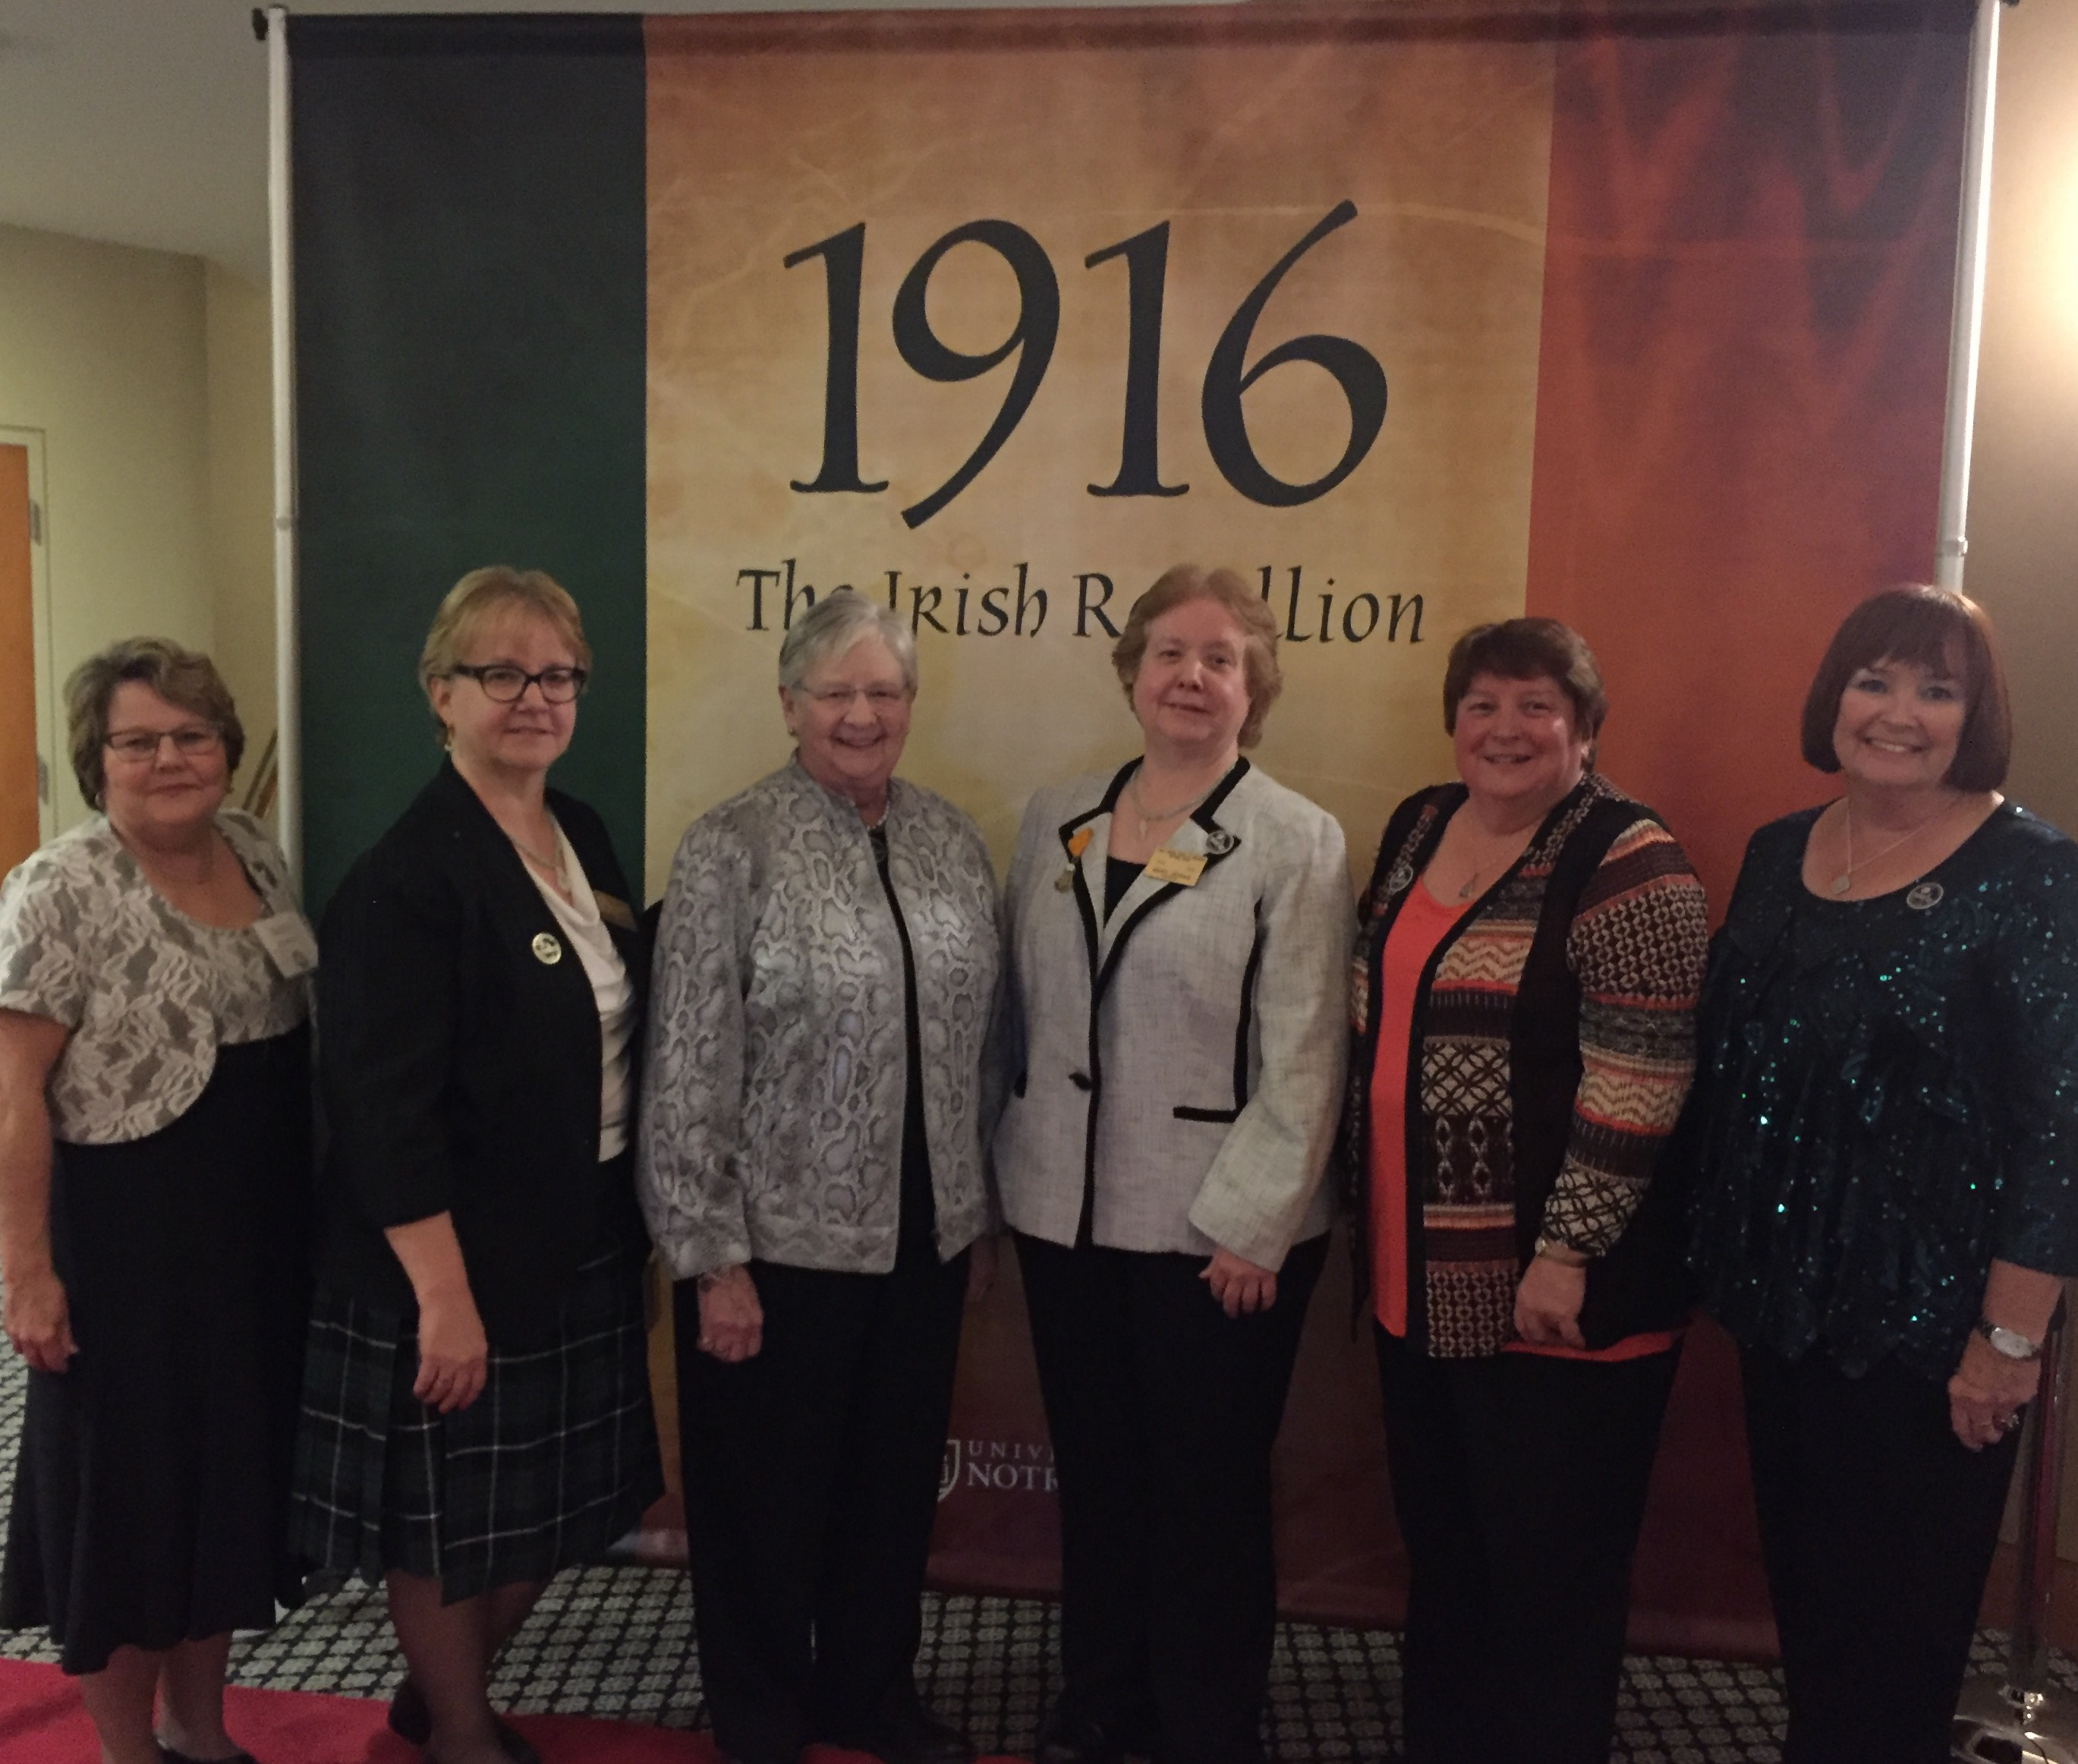 Ohio State President Maire Manning, National FFAI Chair Peggy Cornish, National Vice President Pat O'Connell, National President Mary Hogan, National Irish Historian Marilyn Madigan and National Immediate Past President Maureen Shelton at the World Premiere of 1916 The Irish Rebellion